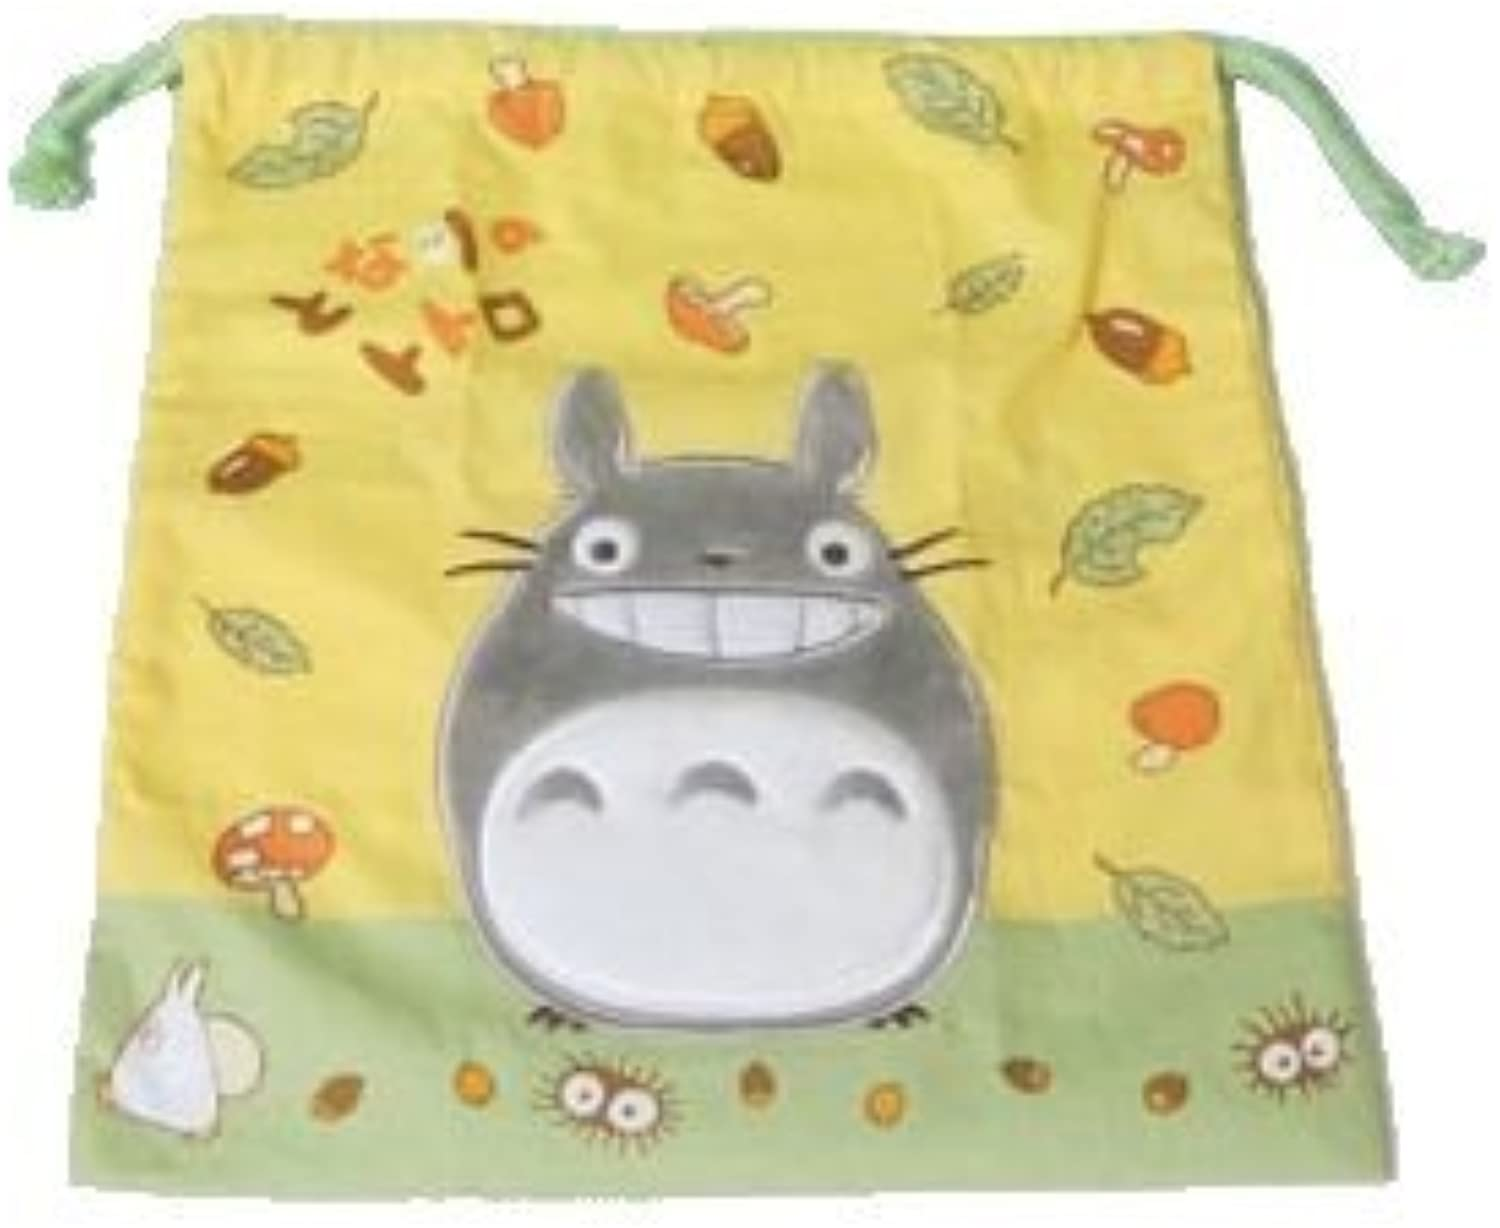 My Neighbor Totgold purse L [smile] (enrollment, new semester miscellaneous goods)